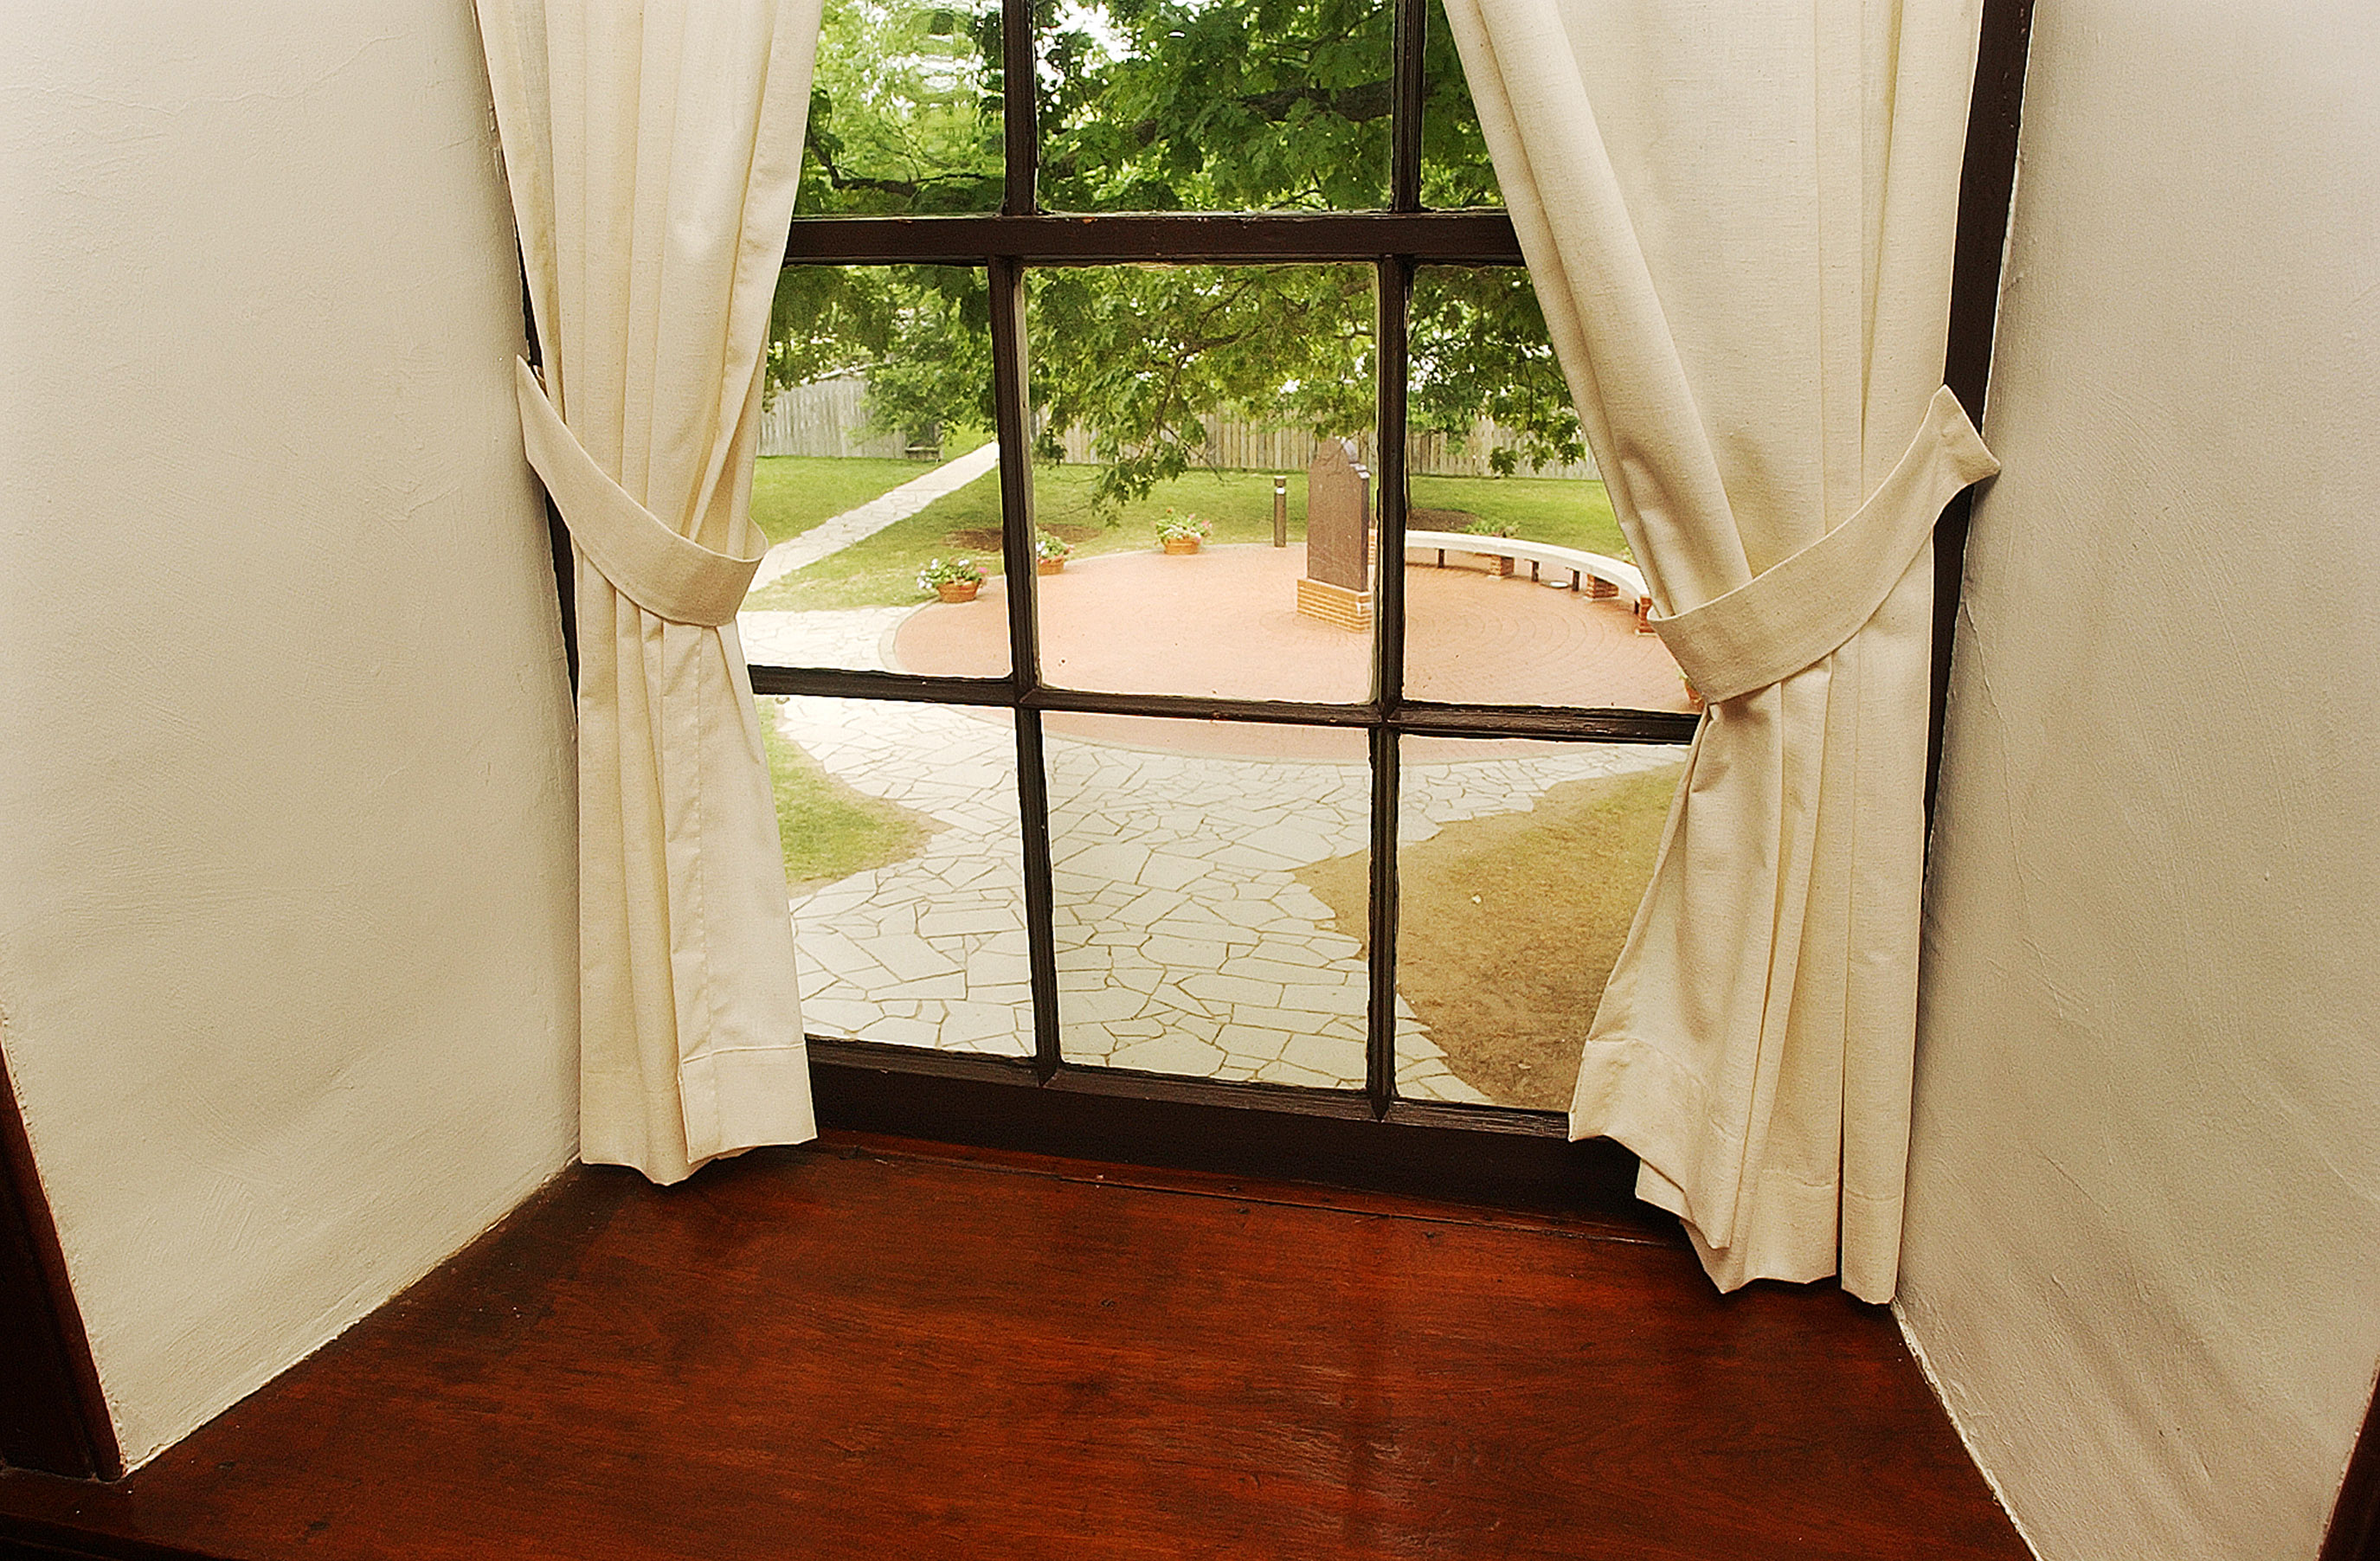 The Carthage jail bedroom window where Joseph Smith fell after being shot. Photographed June 24th, 2002.